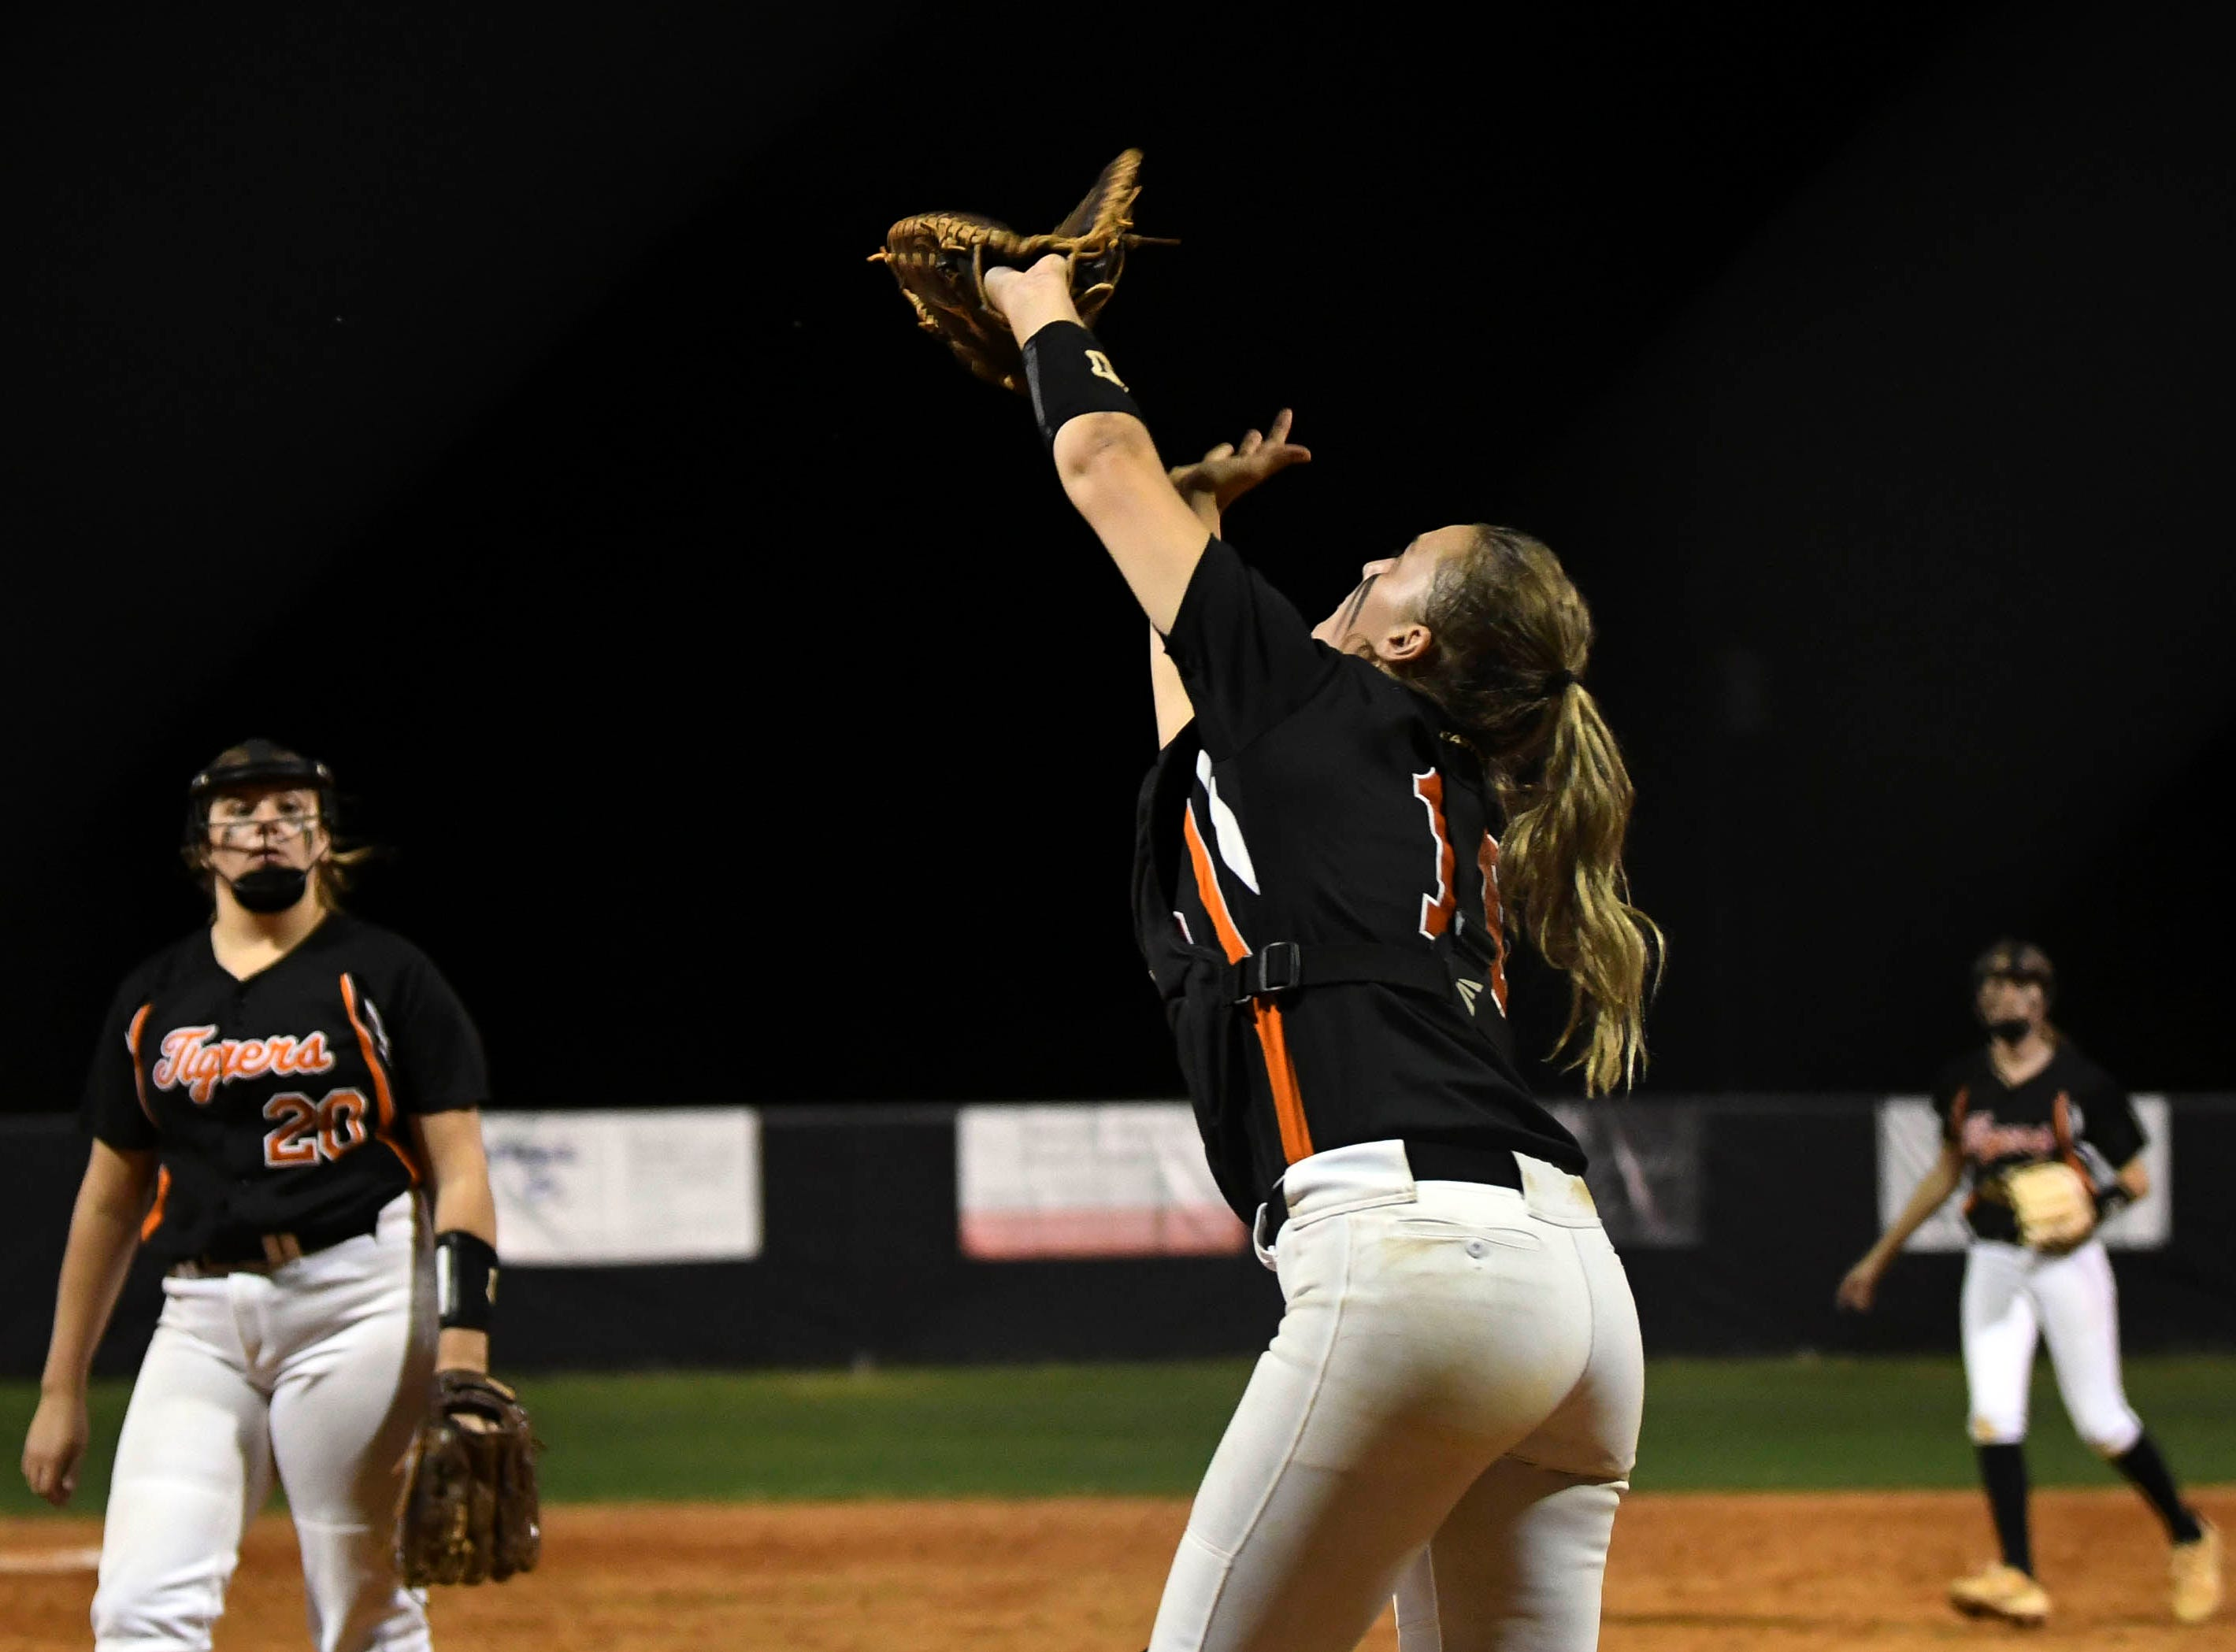 Cocoa catcher Madison Lawson brings down a fly ball during Friday's game against Viera.